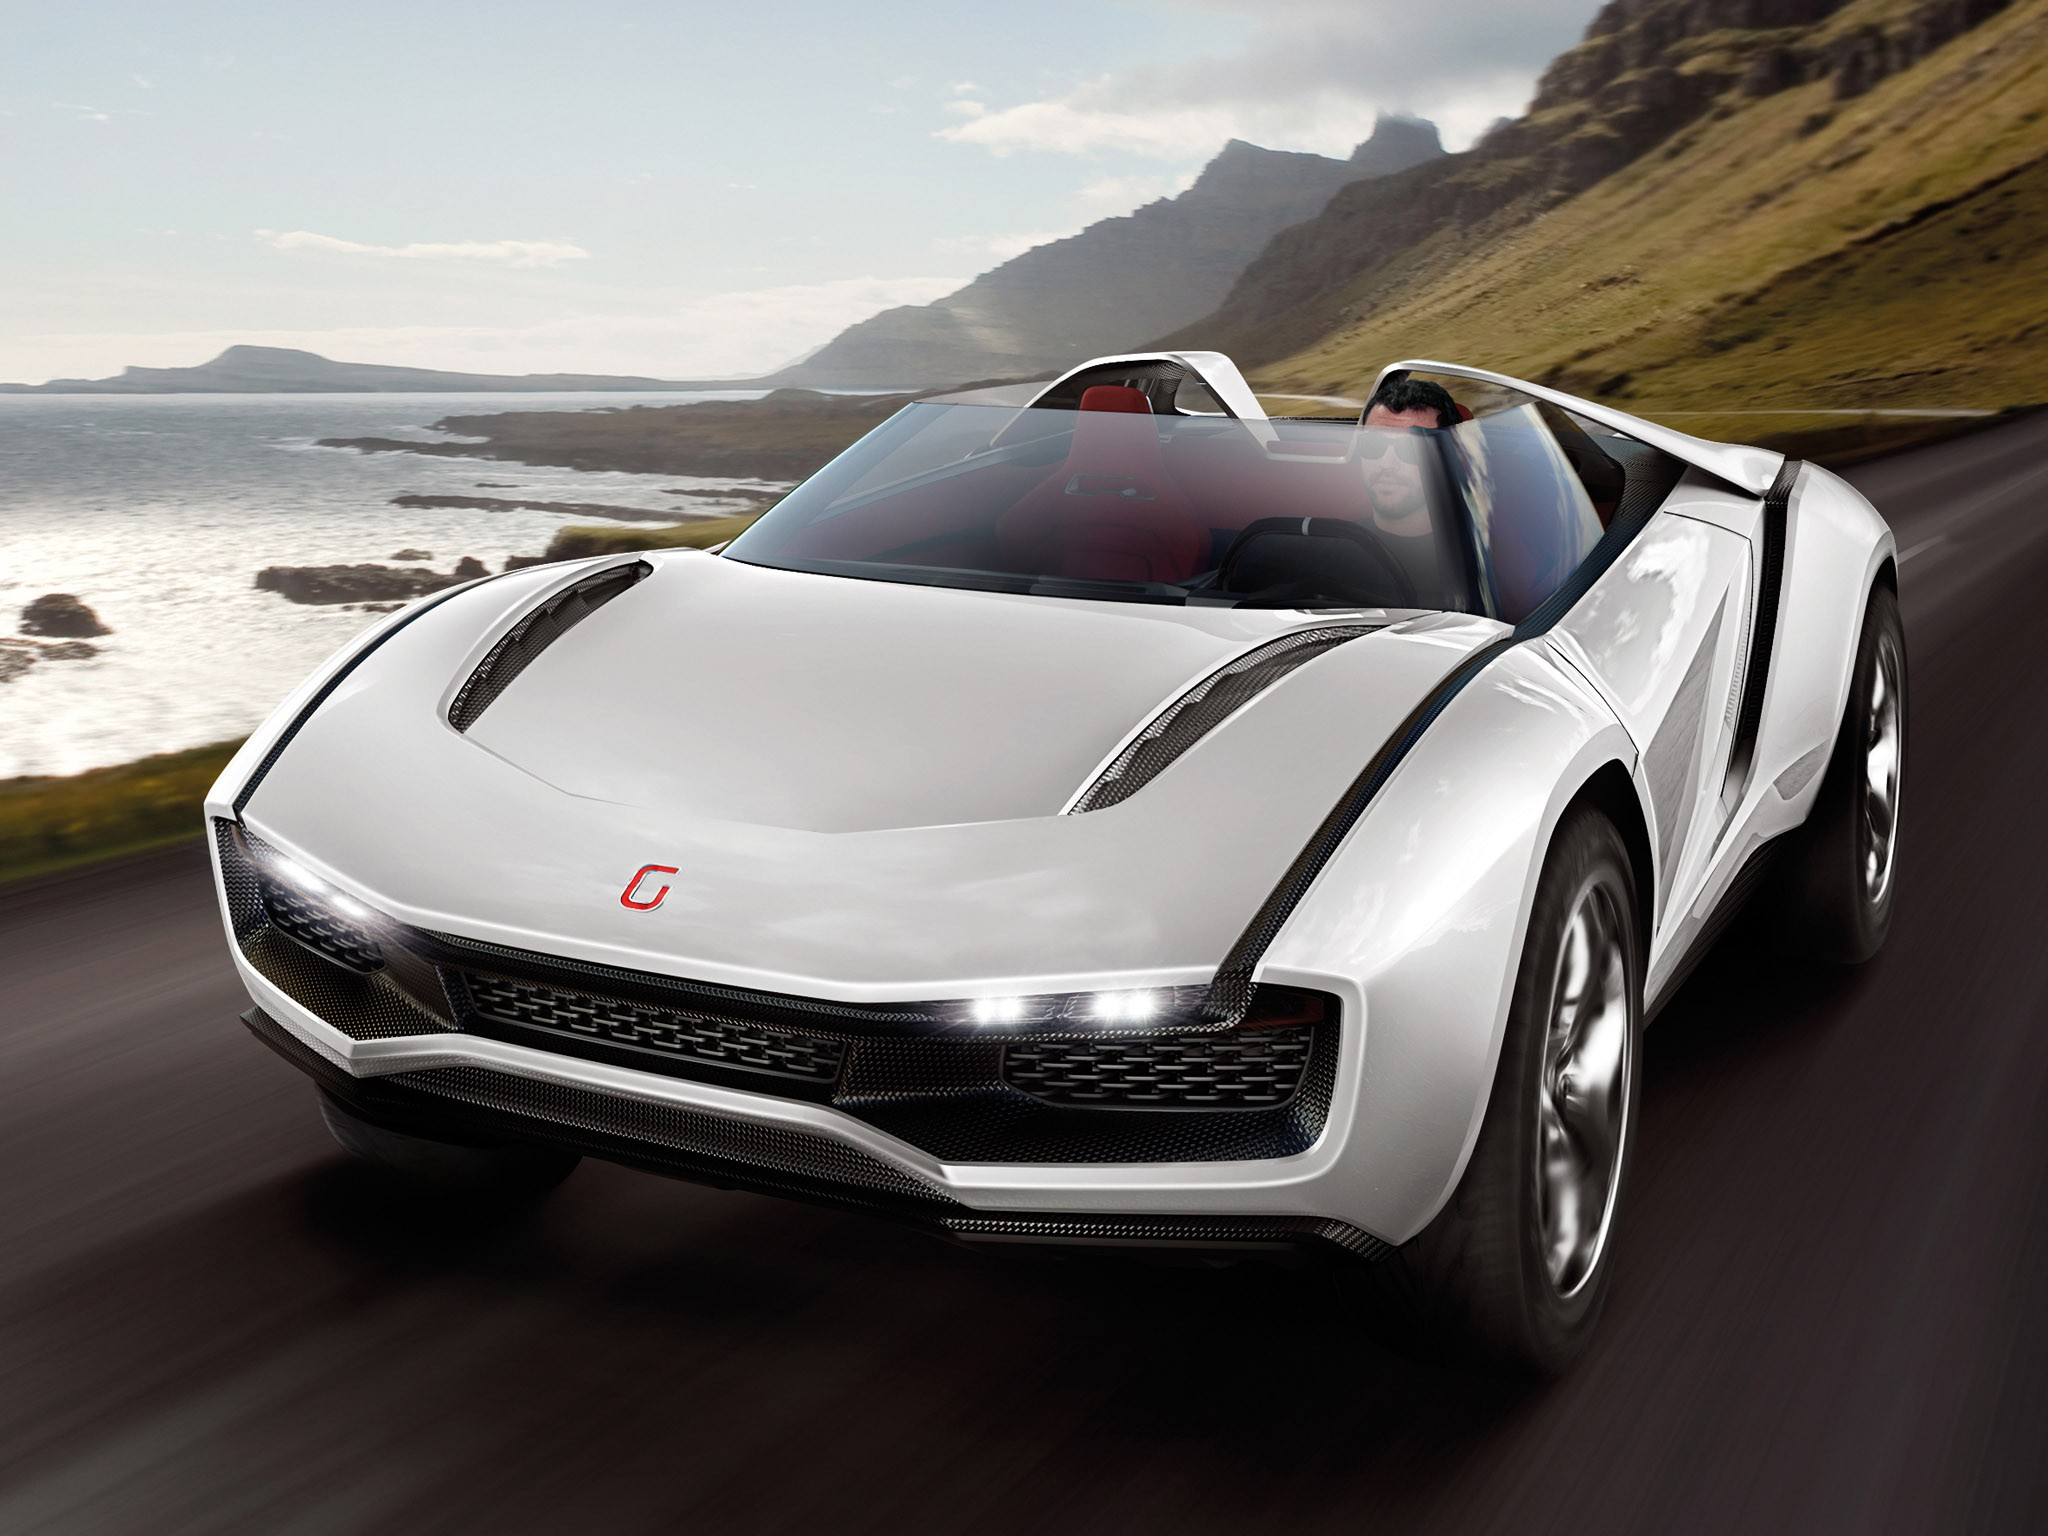 2013 Italdesign Parcour Roadster